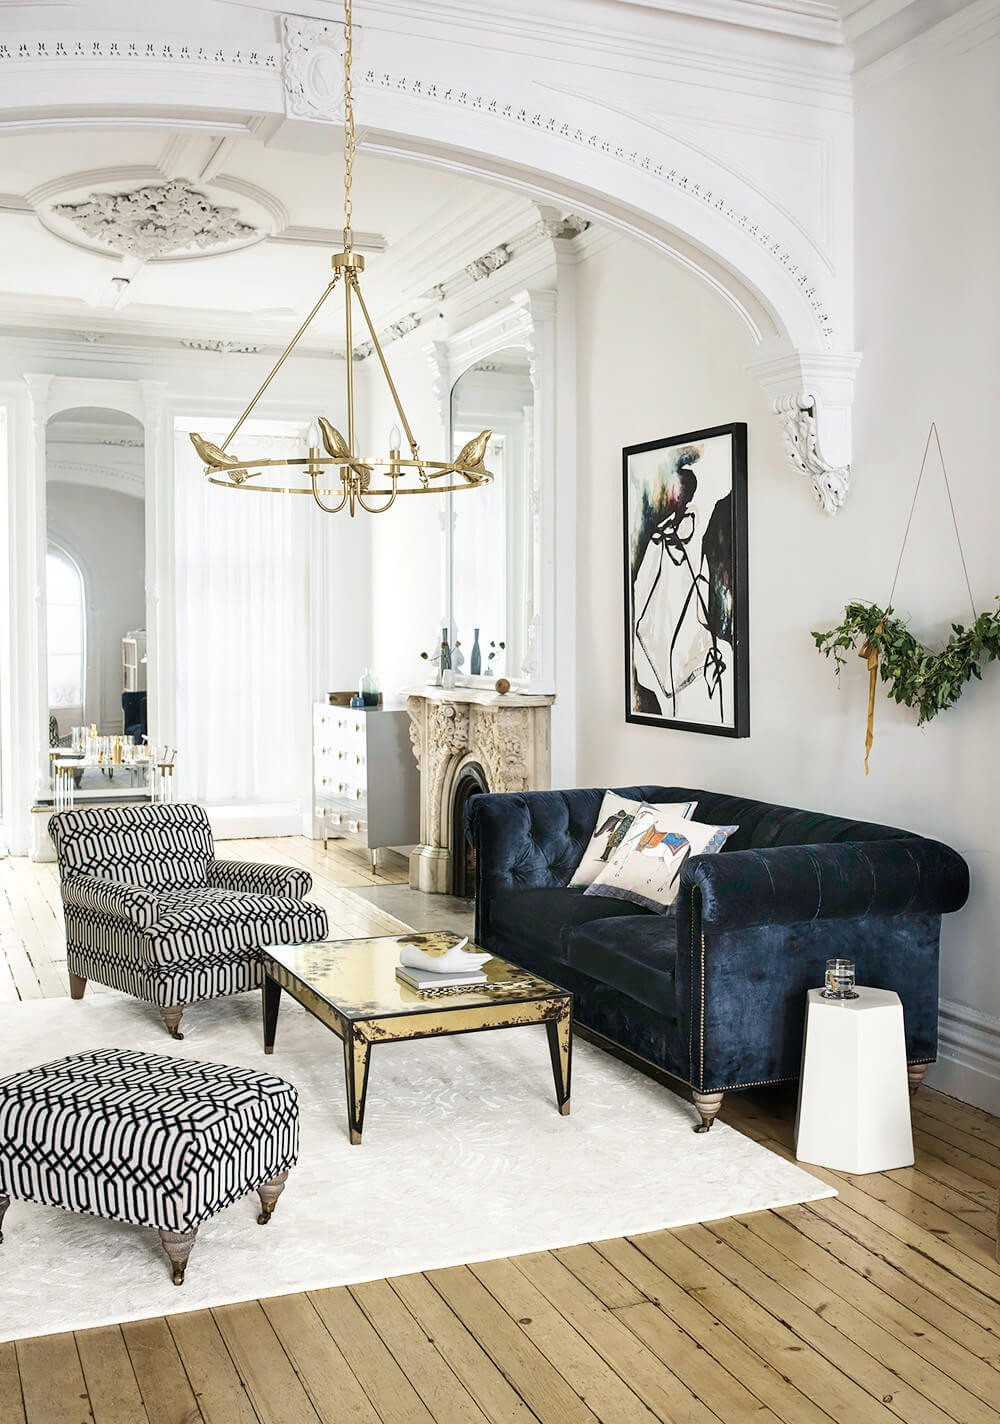 Modern Chic Living Room Decorating Ideas Inspirational 26 Best Modern Living Room Decorating Ideas and Designs for 2019